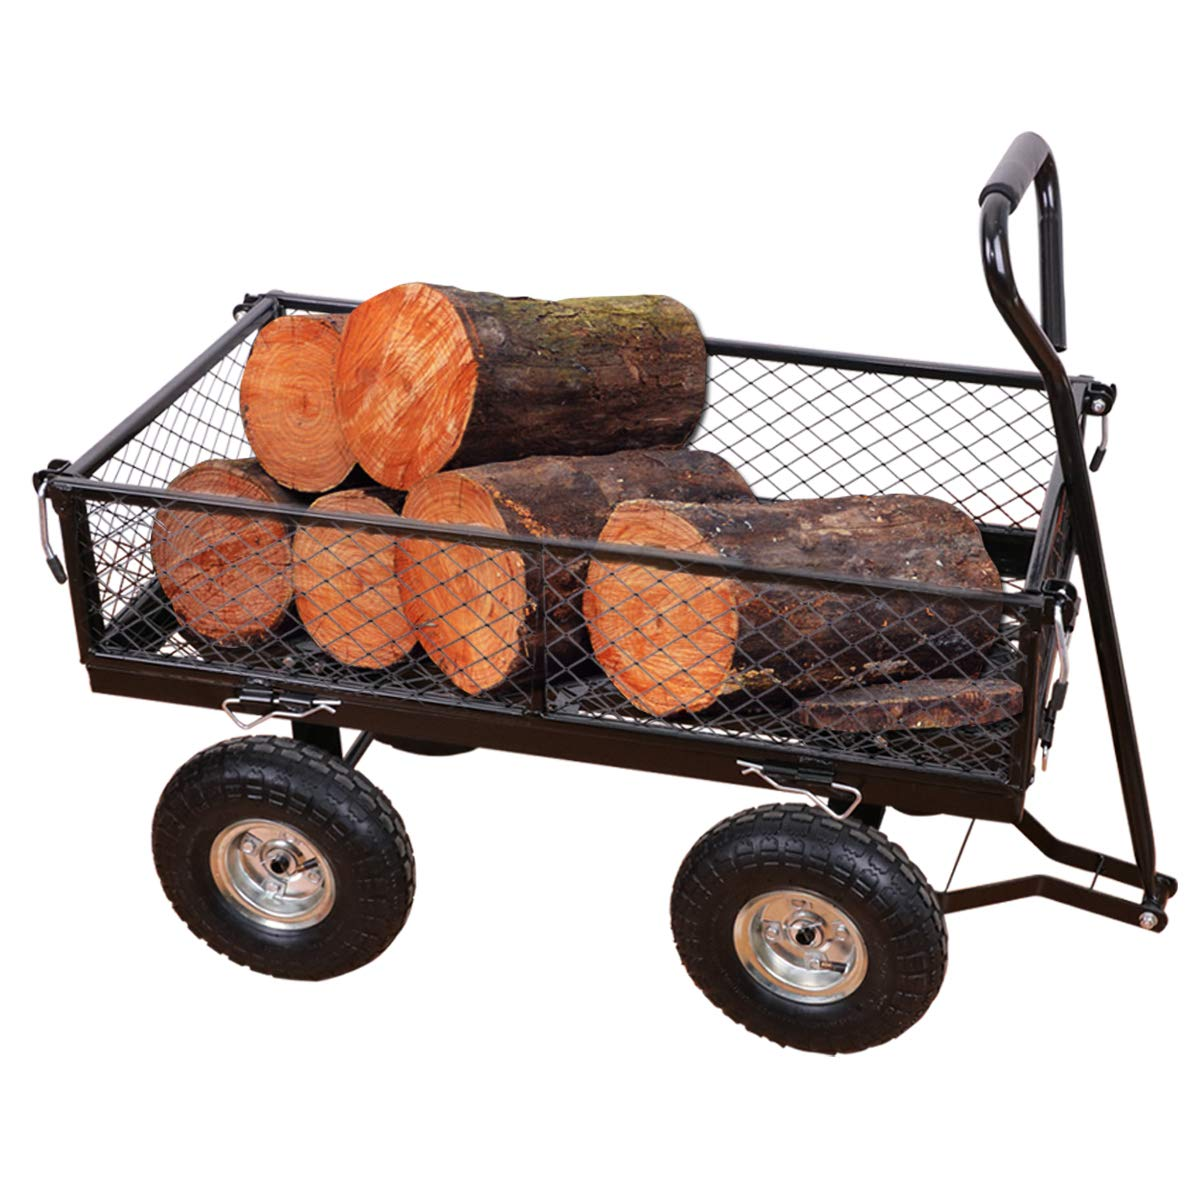 Yardeen Steel Wagon Cart Wheelbarrow Trailer Heavy Duty Outdoor Large Garden Trolley Load Capacity 400LB Color Black